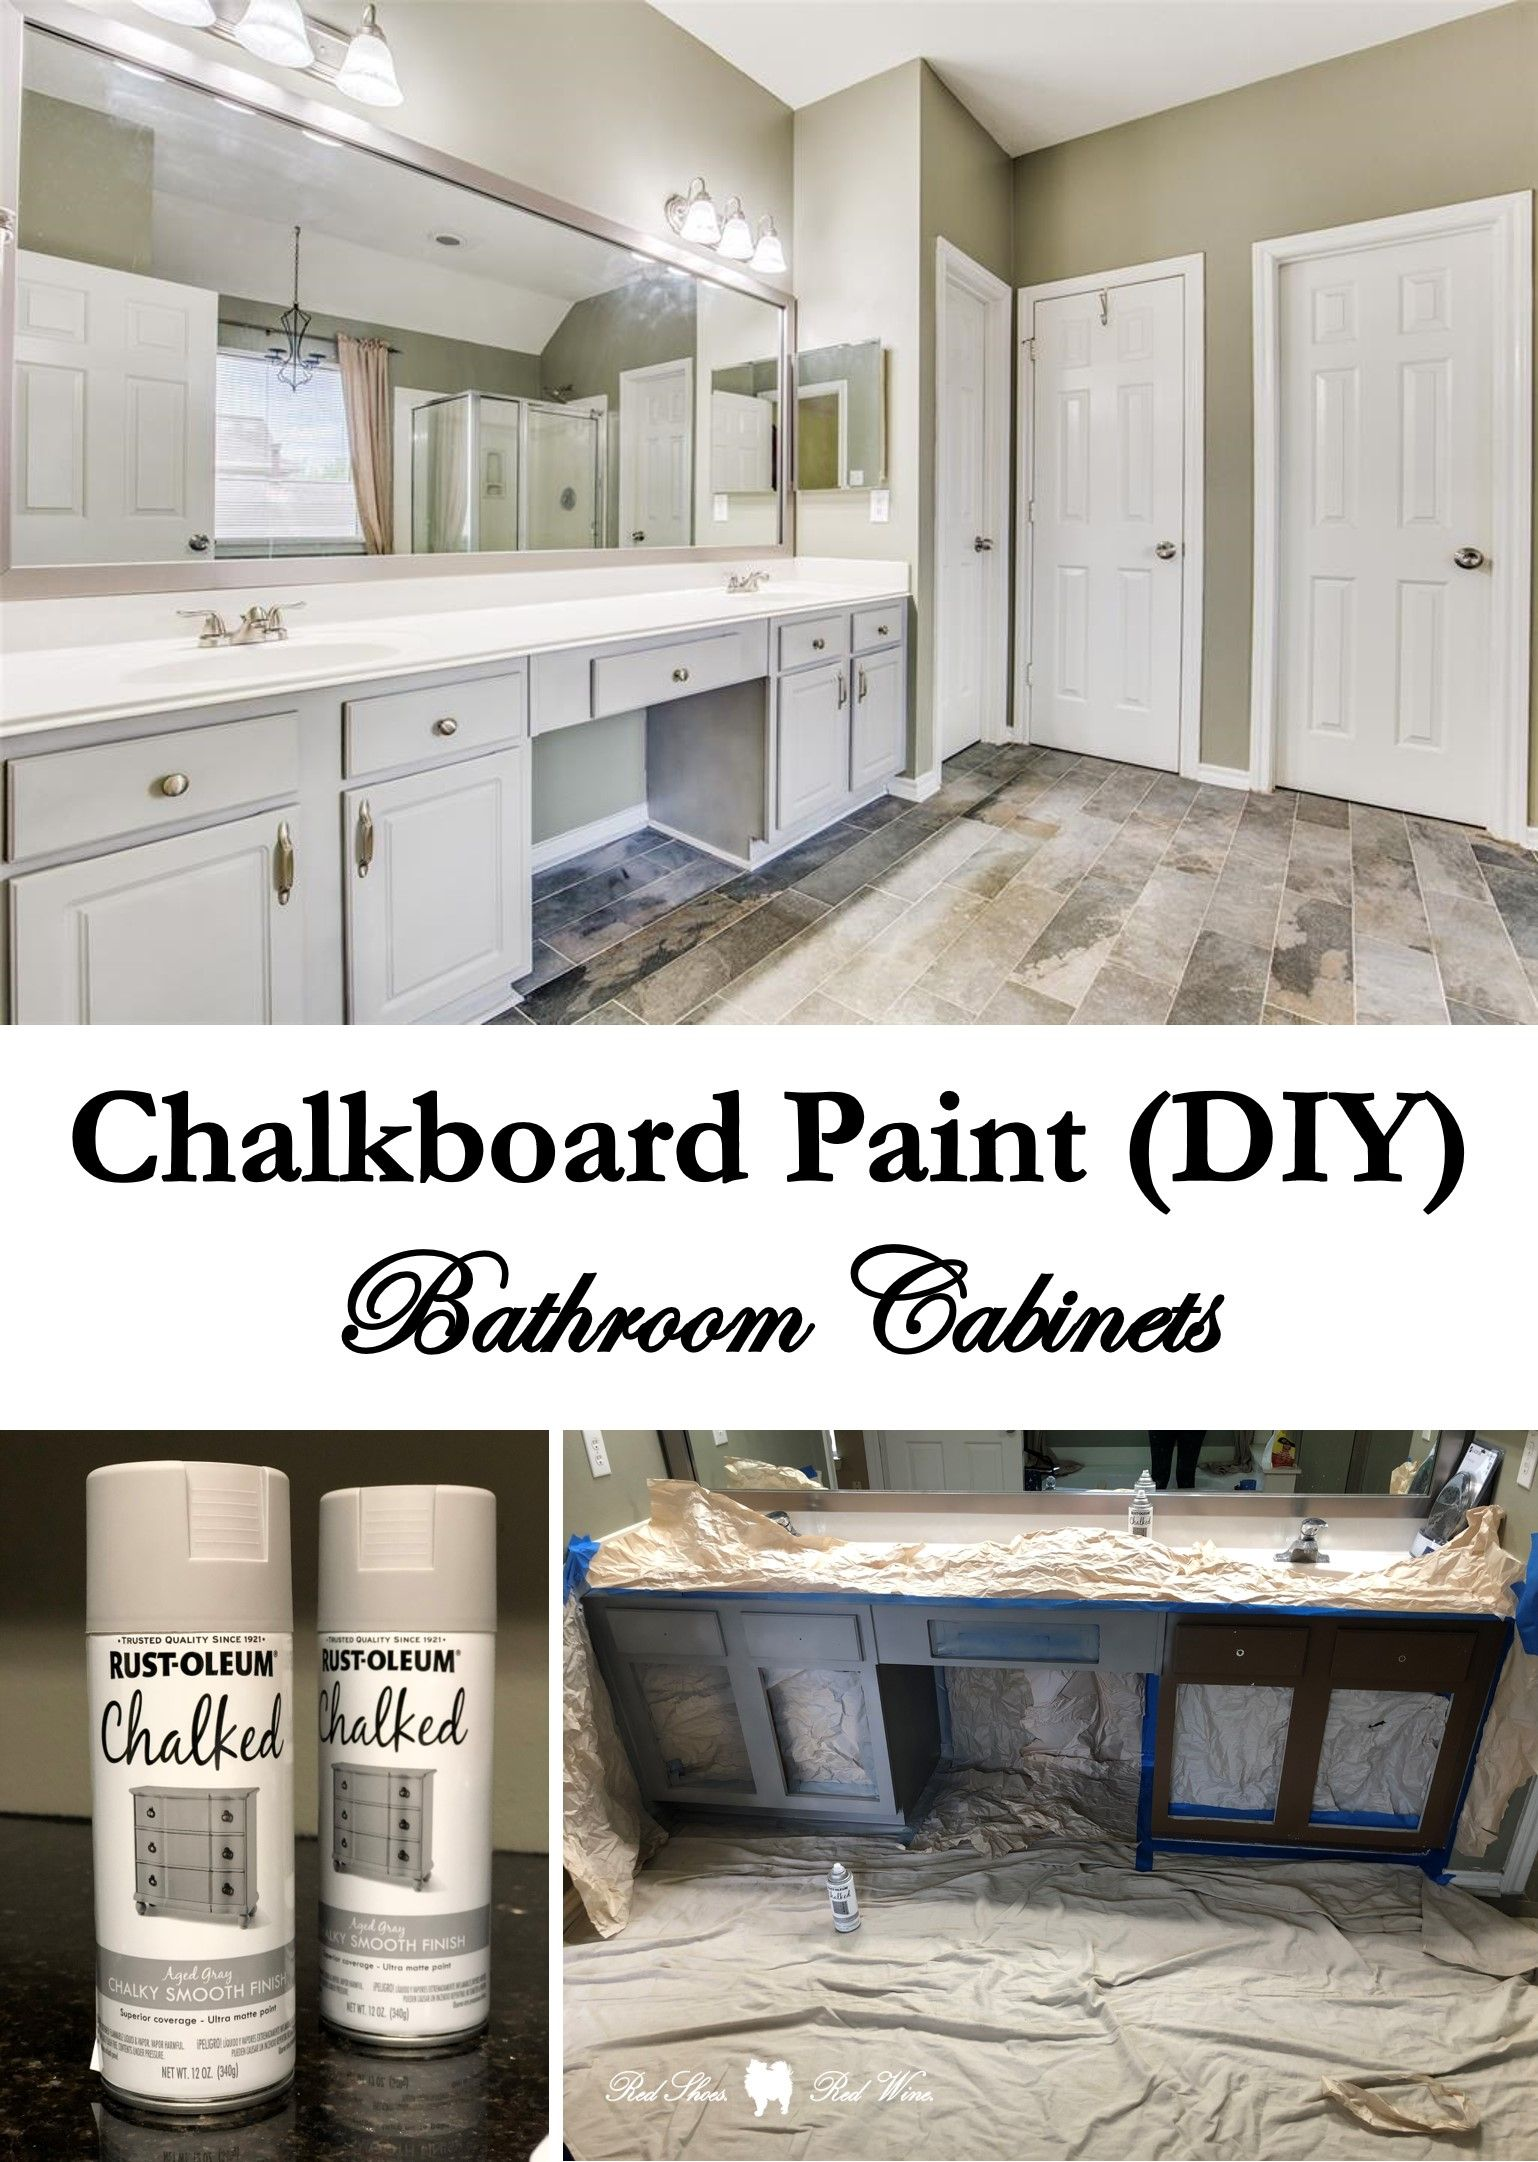 You Spray Painted What? A Chalkboard Paint (DIY) | Spray ...